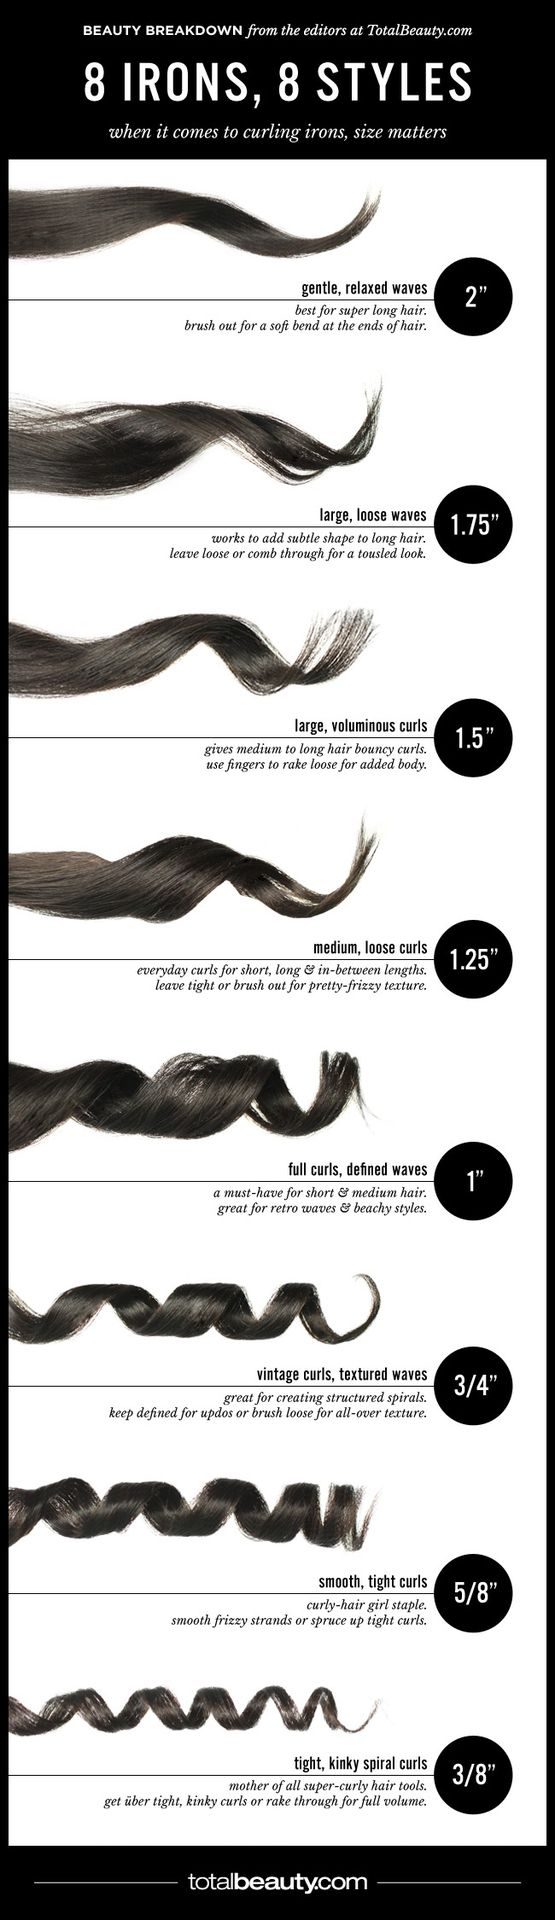 Good to know for the next time I buy a curling iron! #hair accessory #beauty tips